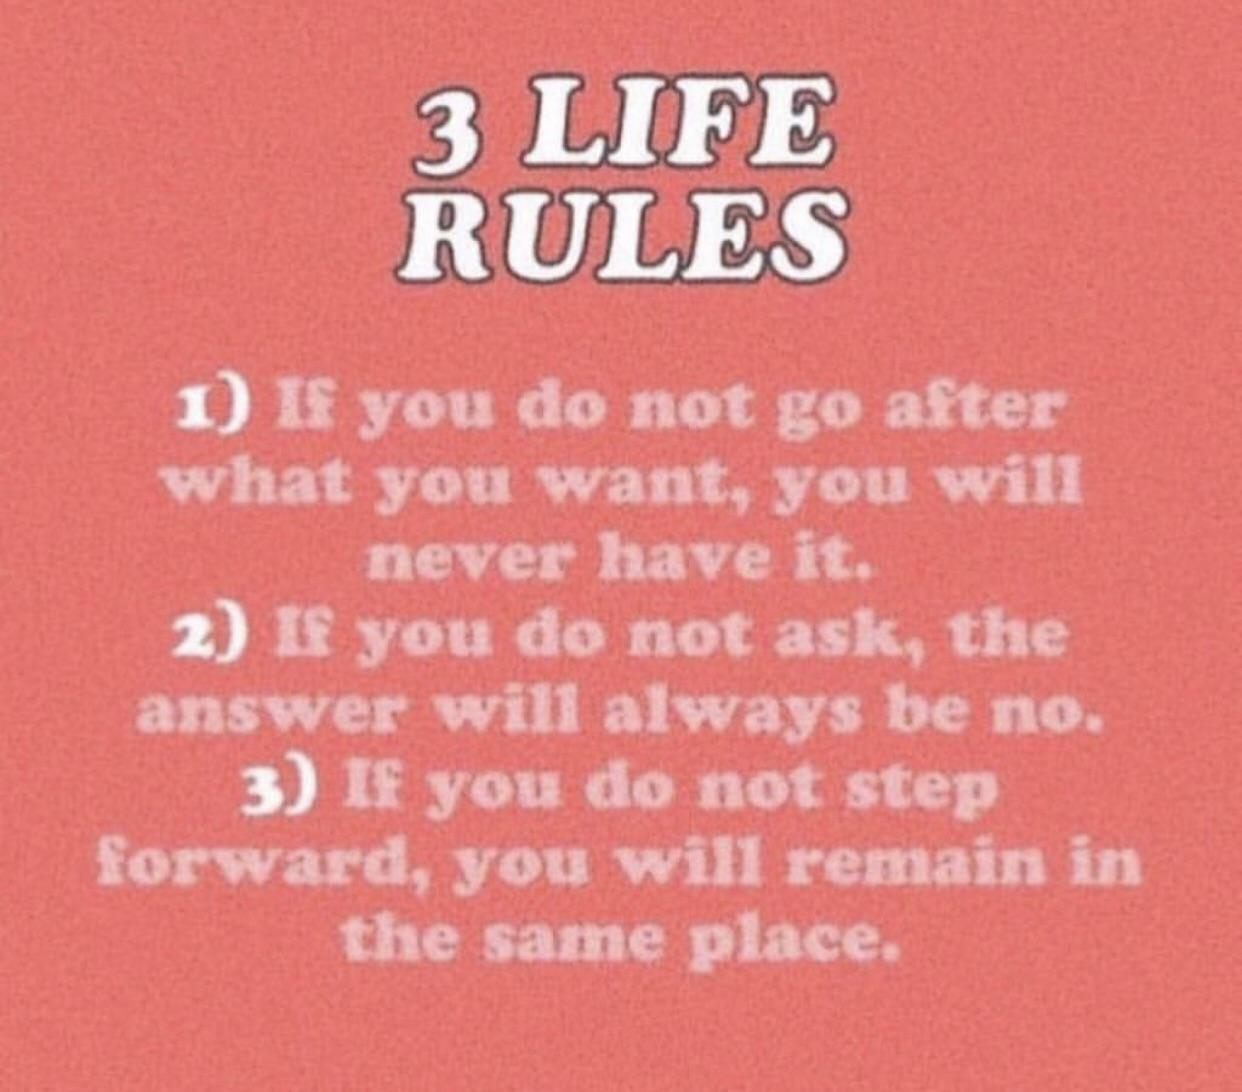 [Image] 3 Life Rules